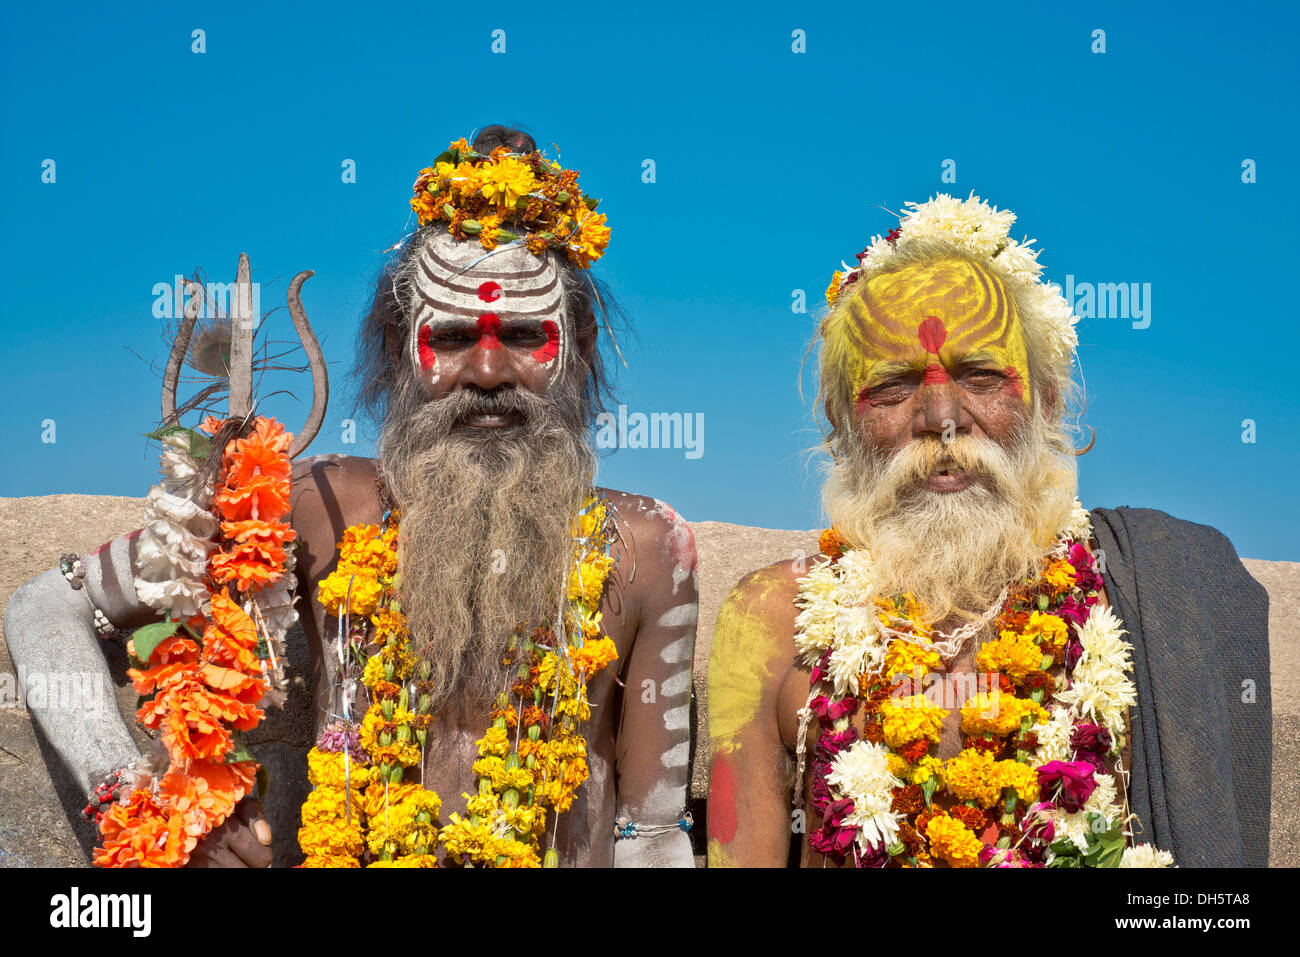 Two sadhus, holy men with a typical face painting, one holding a Trishula trident, Orchha, Madhya Pradesh, India - Stock Image